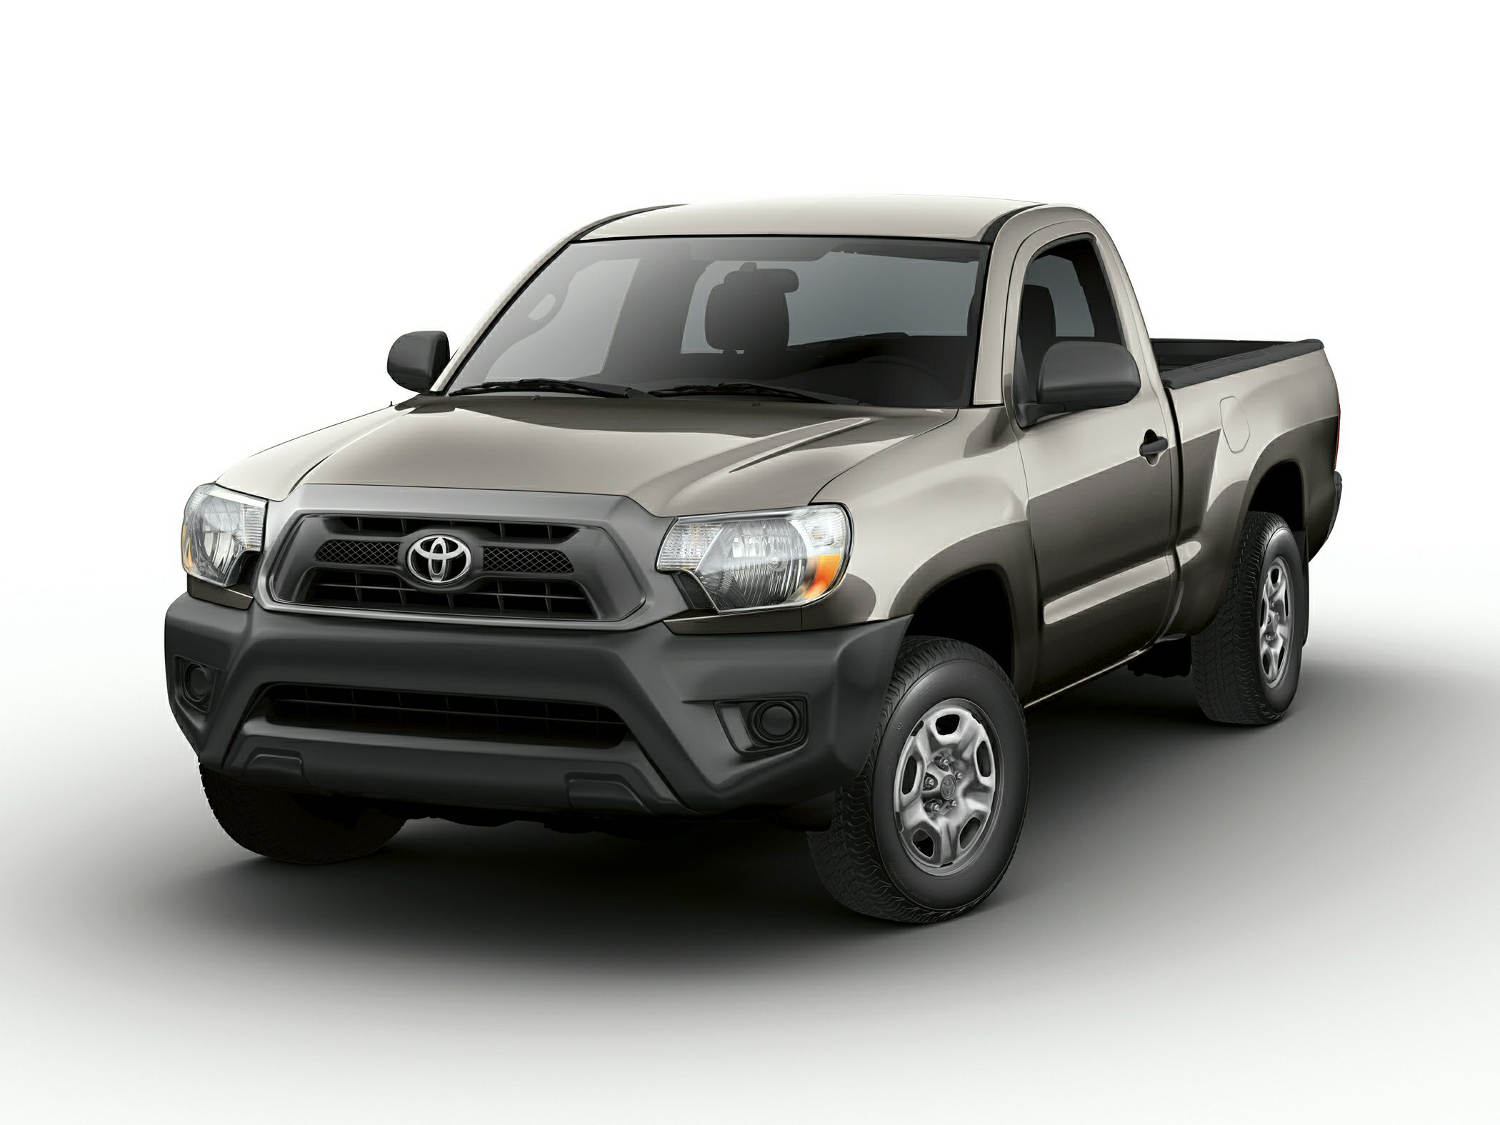 Tacoma Towing Capacity >> Toyota Tacoma Regular-cab Base 2014 | SUV Drive